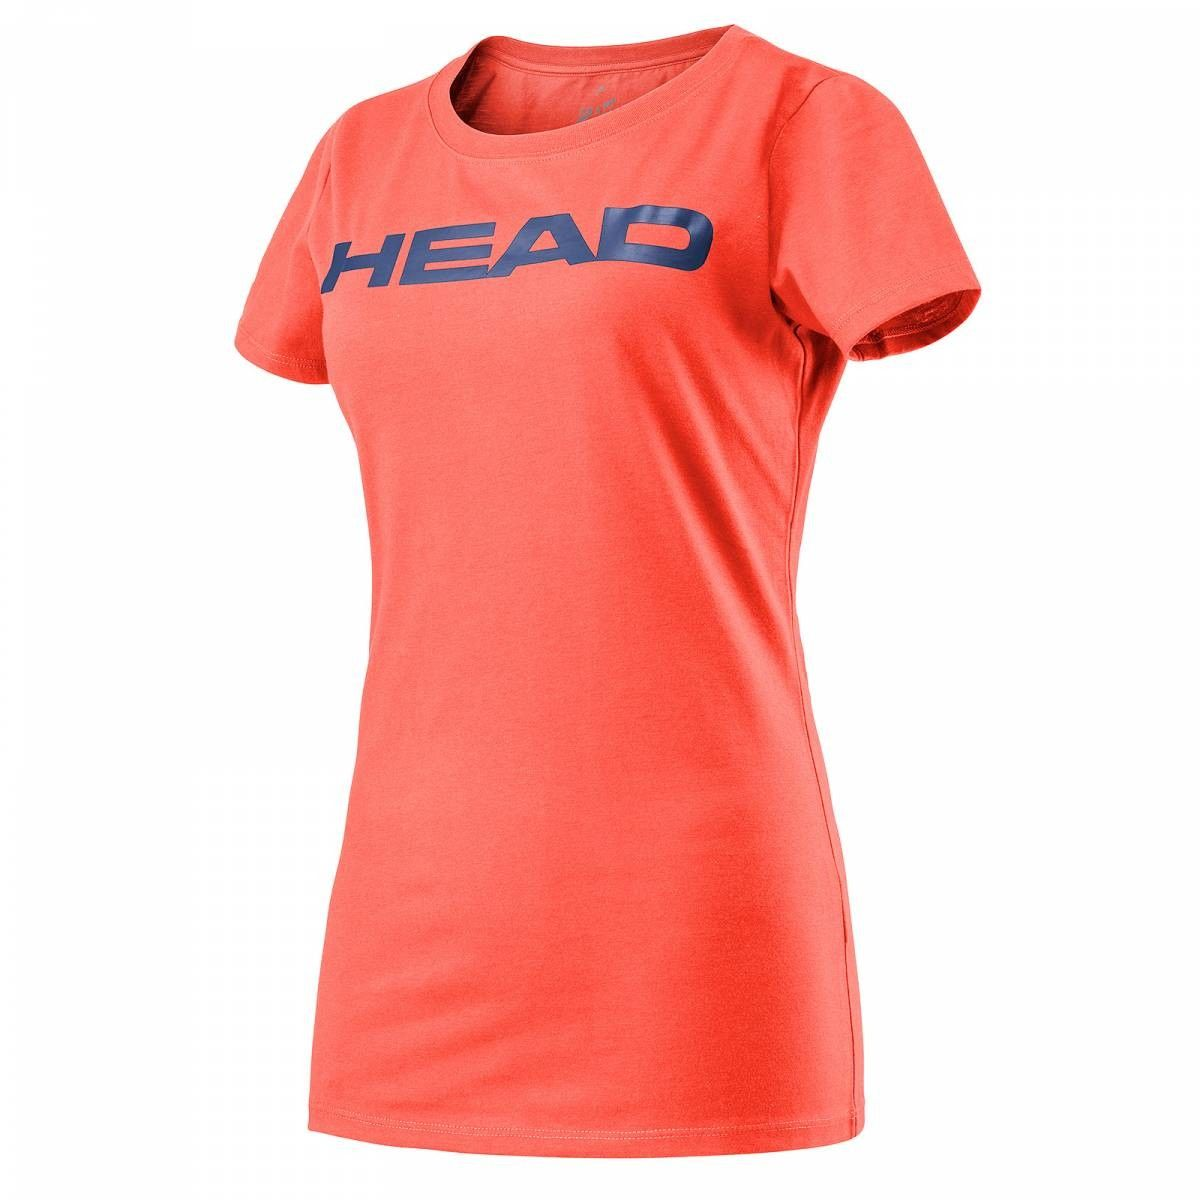 Head Transition W Lucy T-Shirt - coral/navy